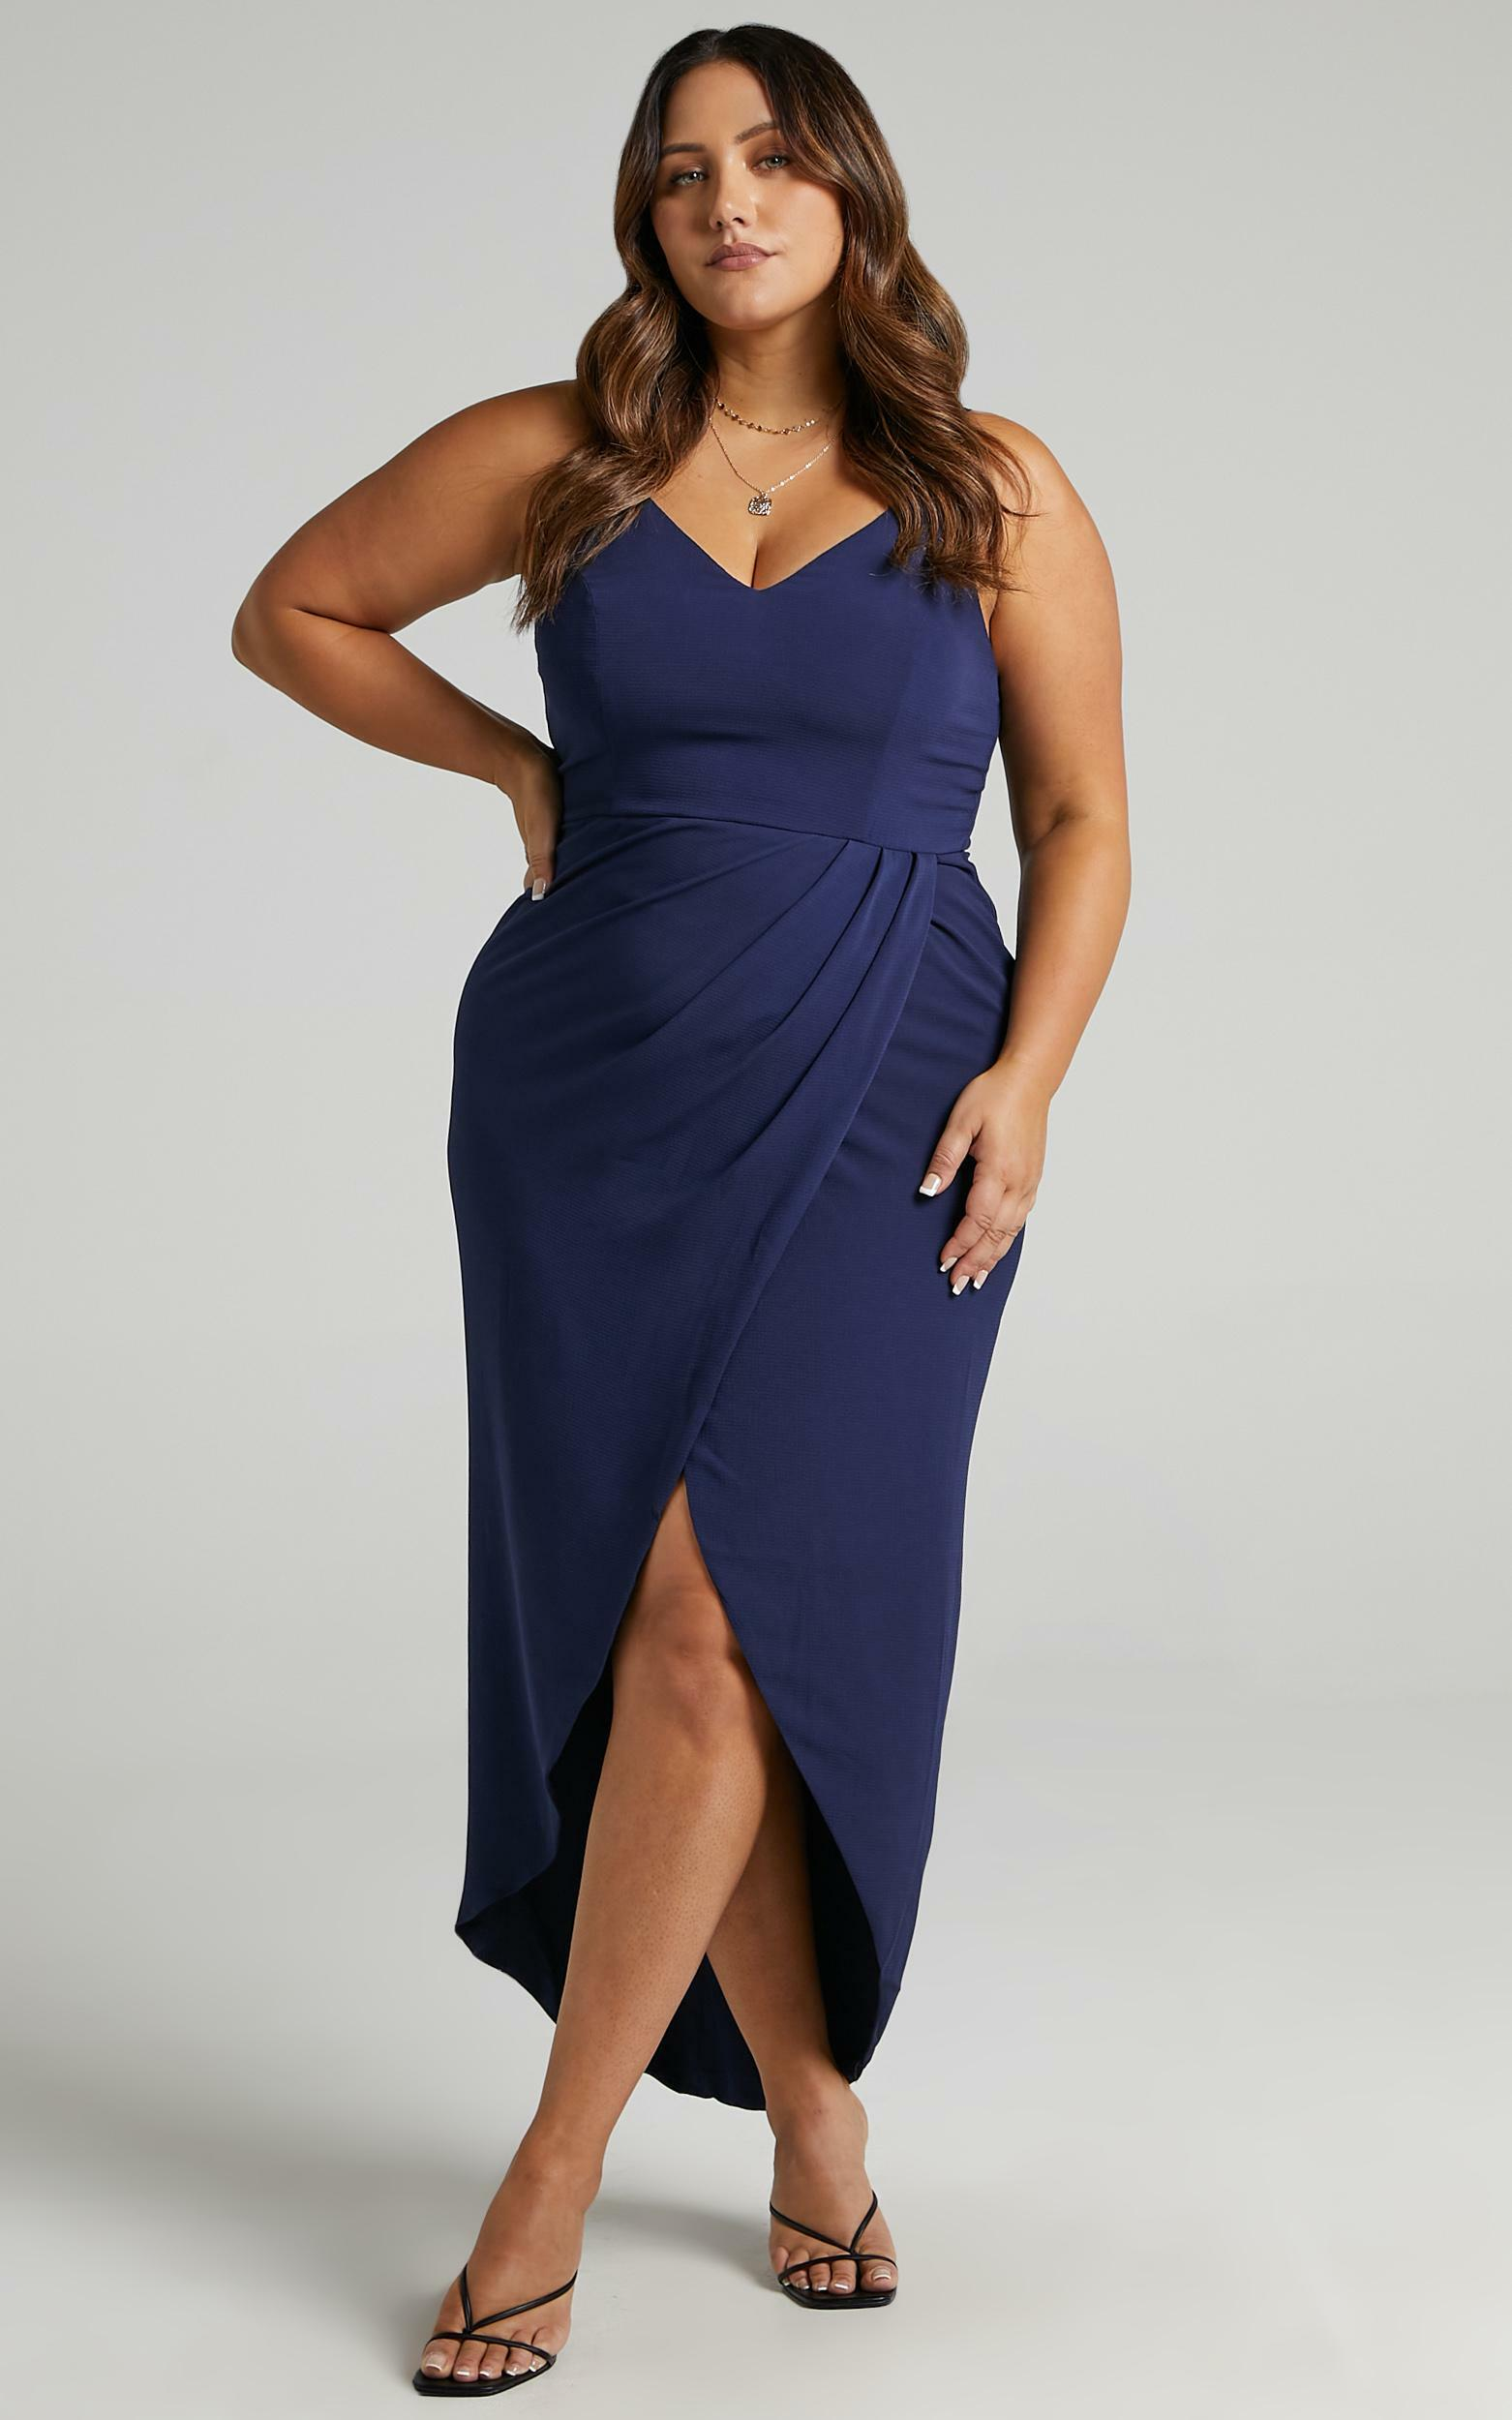 Lucky Day Maxi Dress in Navy - 06, NVY7, hi-res image number null